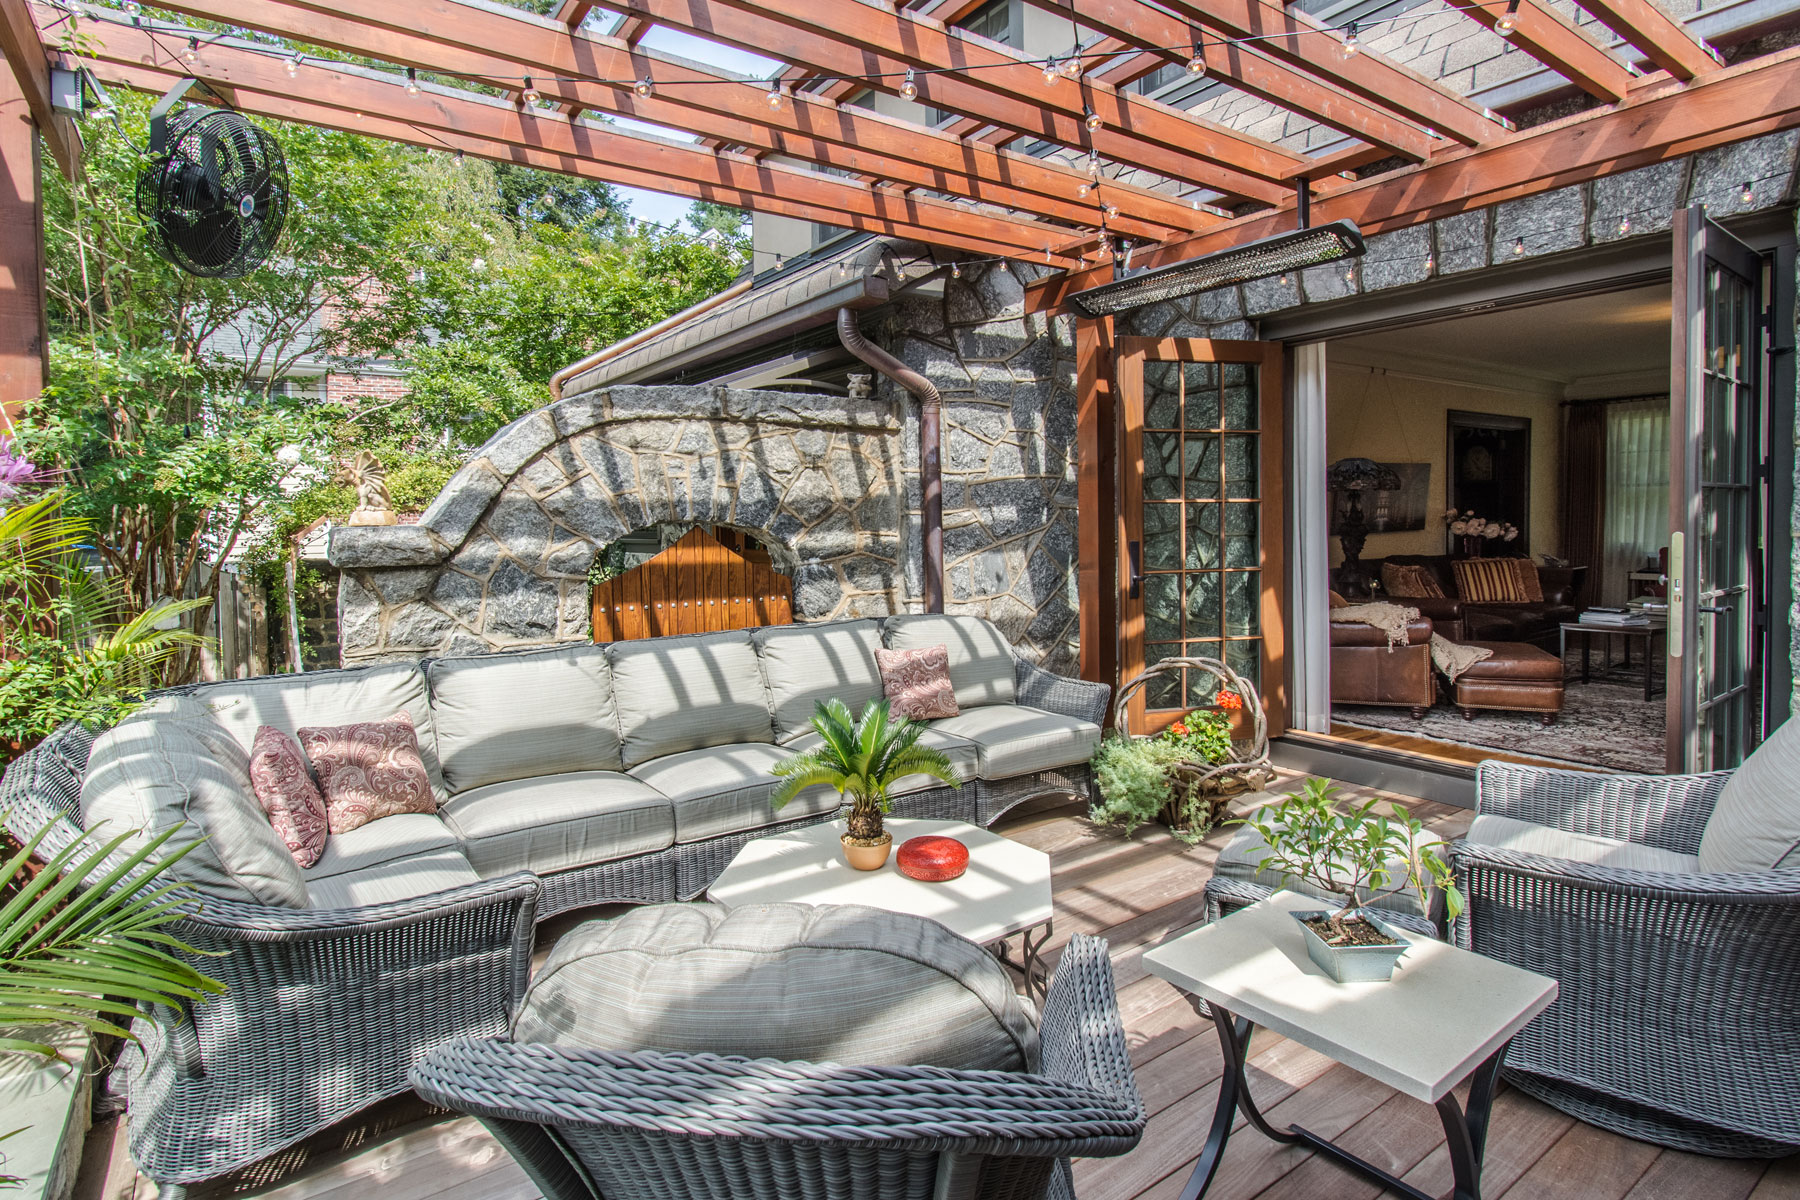 Patio with vintage stone work walls and new trellis to create outdoor living area